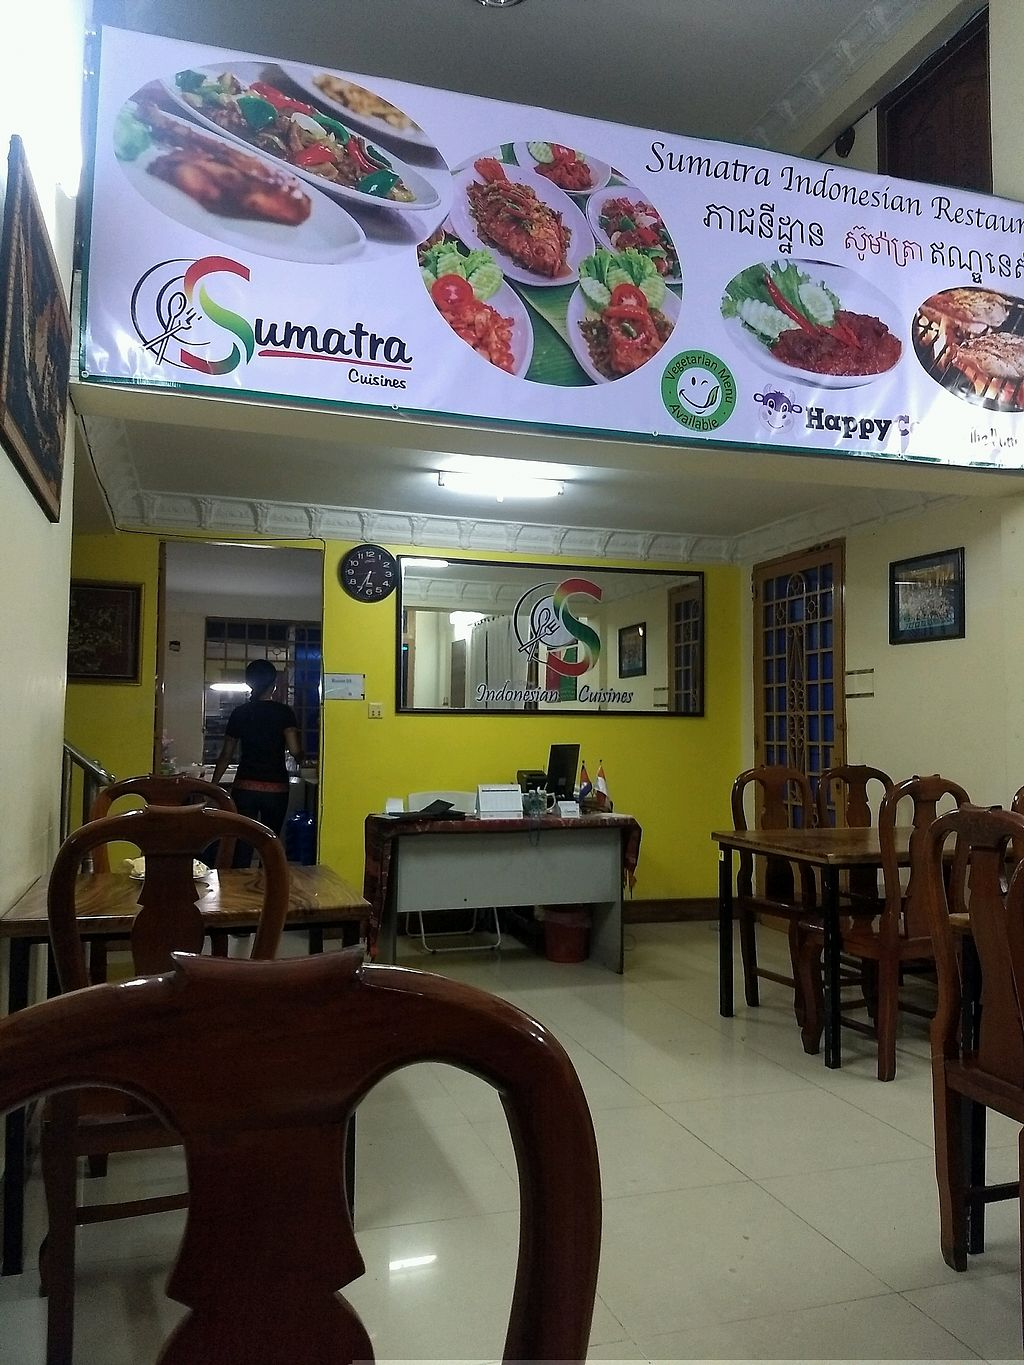 """Photo of Sumatra Restaurant  by <a href=""""/members/profile/AIM"""">AIM</a> <br/>inside <br/> February 26, 2018  - <a href='/contact/abuse/image/110620/364089'>Report</a>"""